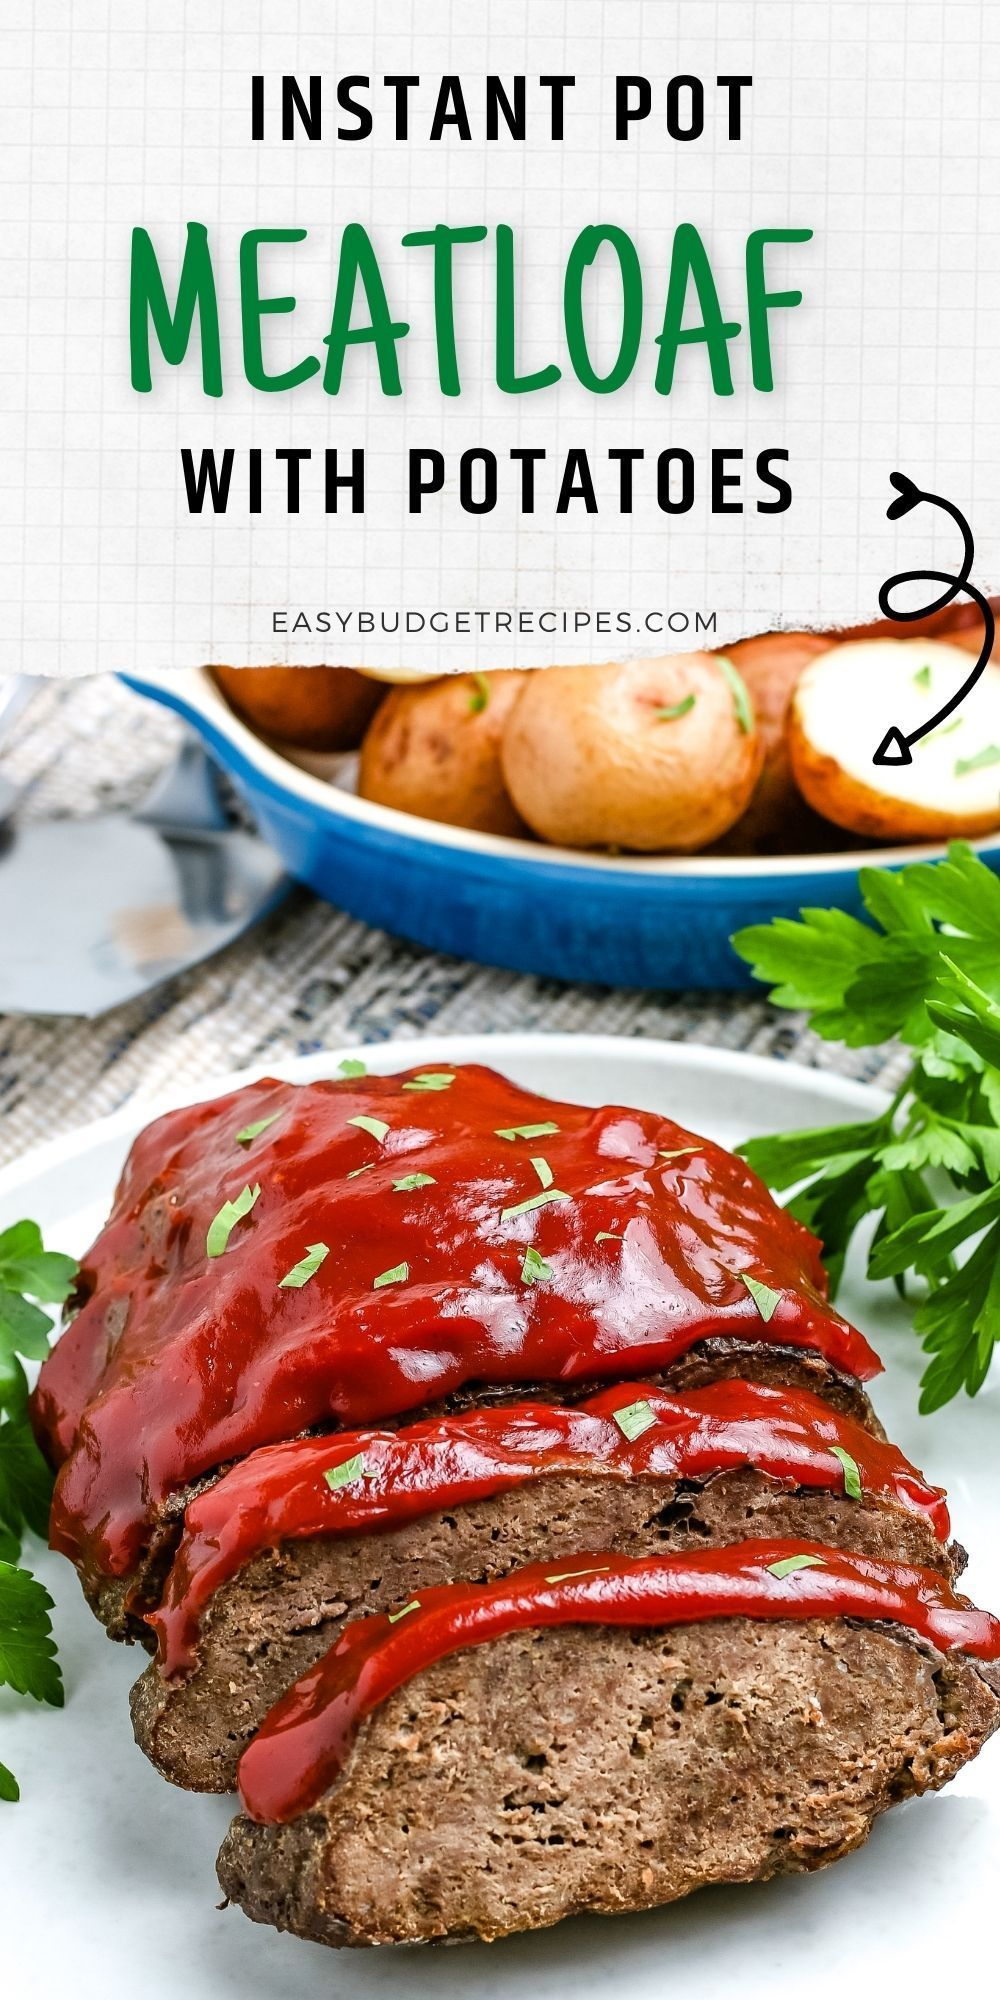 Instant Pot Meatloaf And Potatoes Easy Budget Recipes Recipe Instant Pot Dinner Recipes Meatloaf Instant Pot Recipes